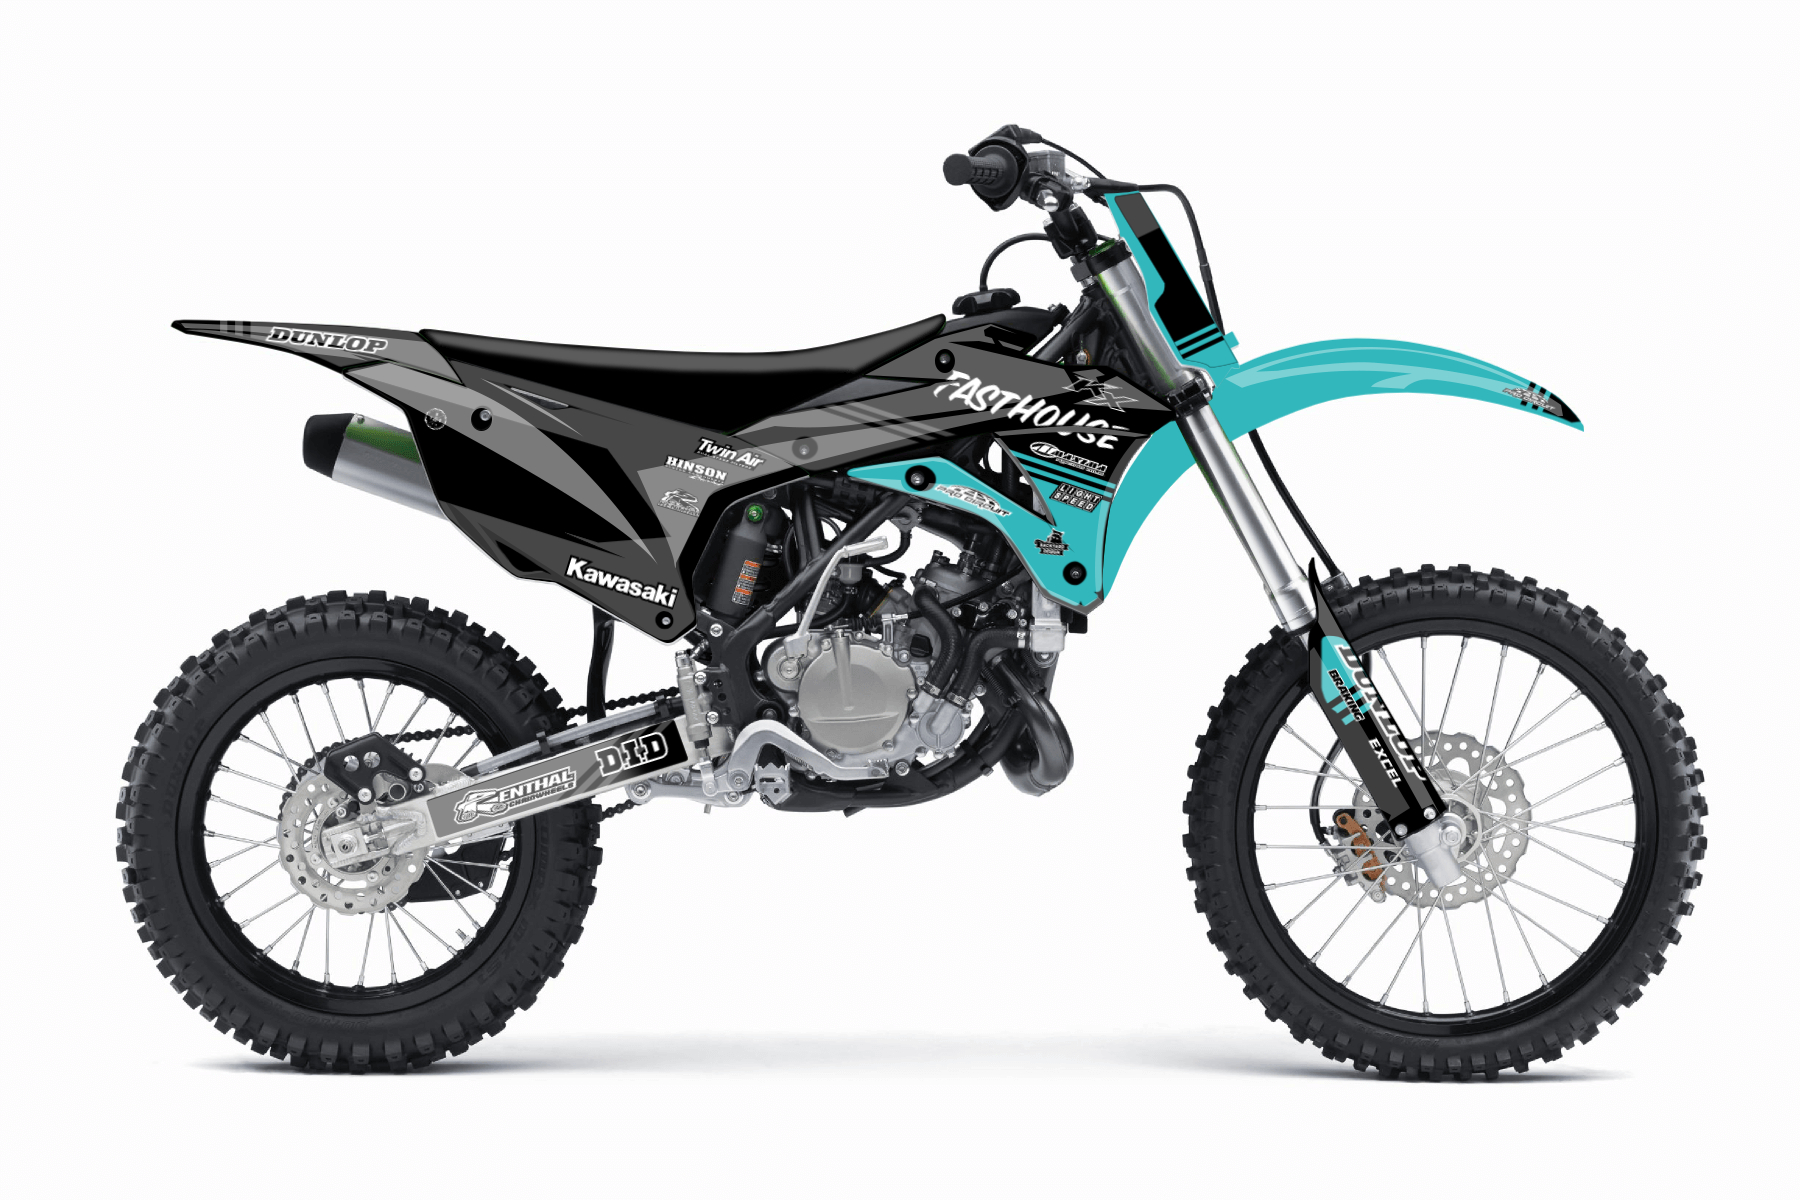 Kawasaki KX85 MX Graphic Kits  The Kawasaki KX 85 is the perfect bike for all those who wish to make their first experiences on the off road tracks. Good handling and a sturdy bodywork will make you love this bike.